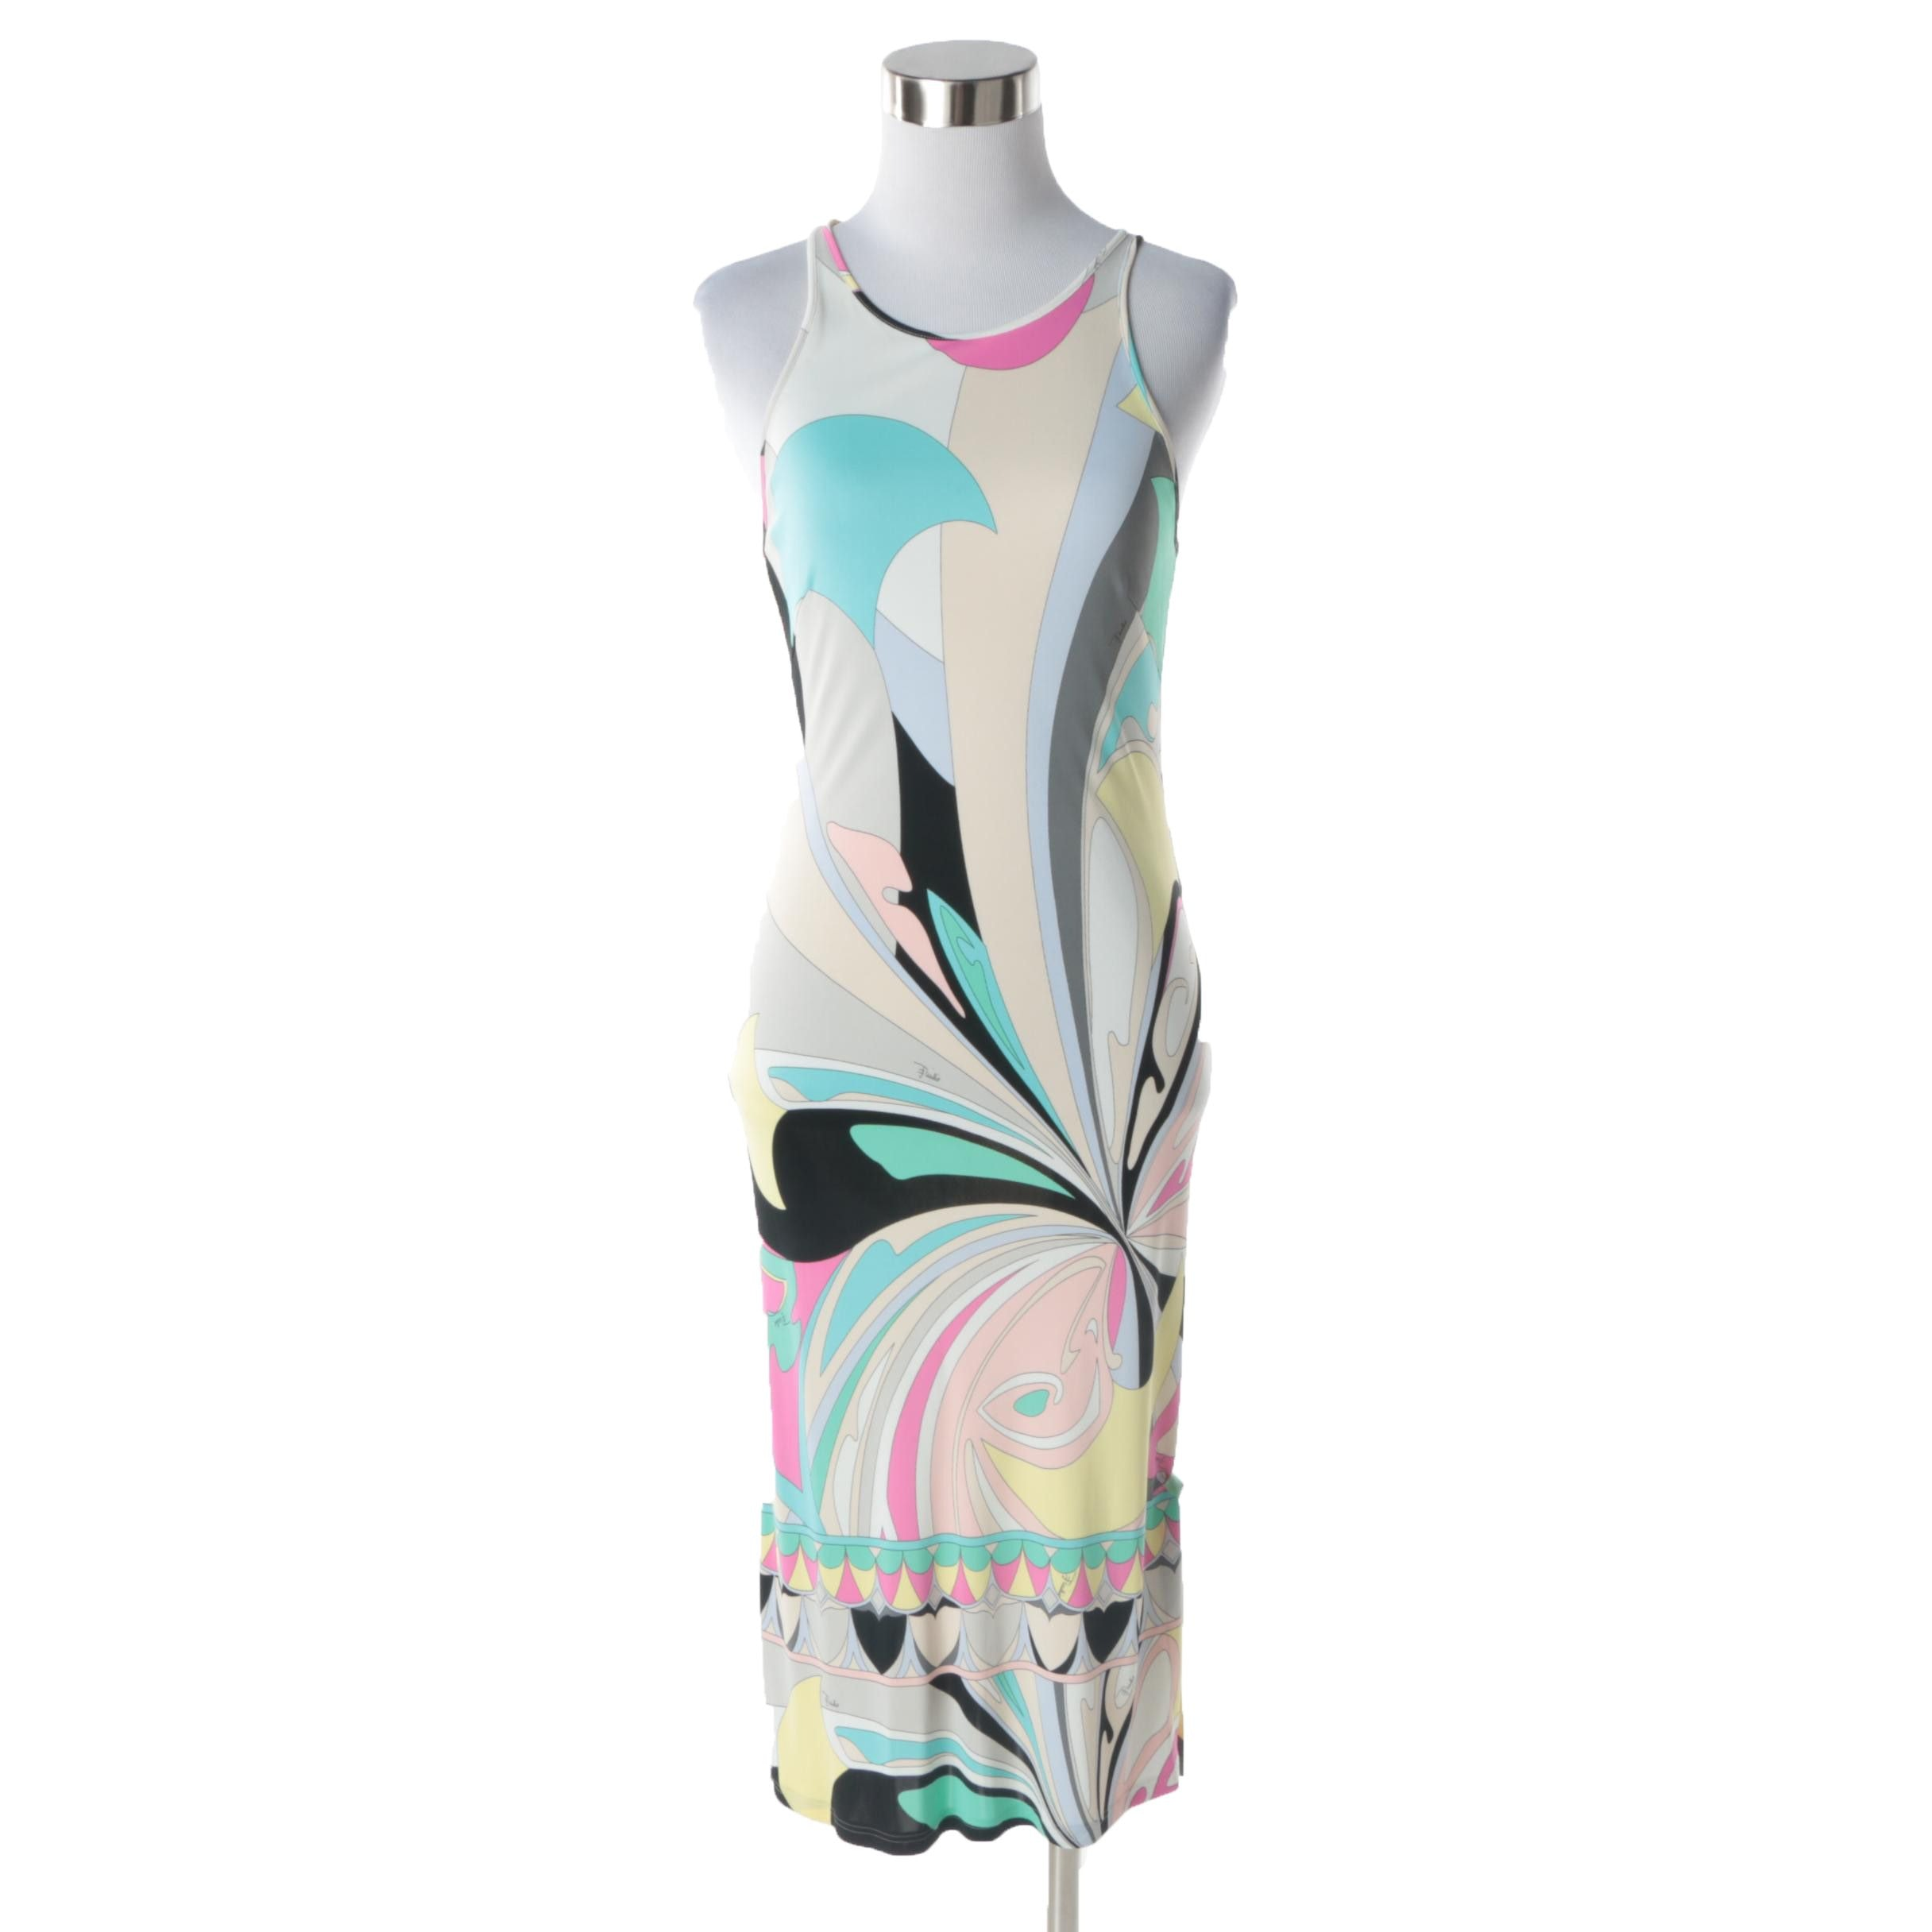 Women's Emilio Pucci Firenze Multicolored Floral Print Sheath Dress